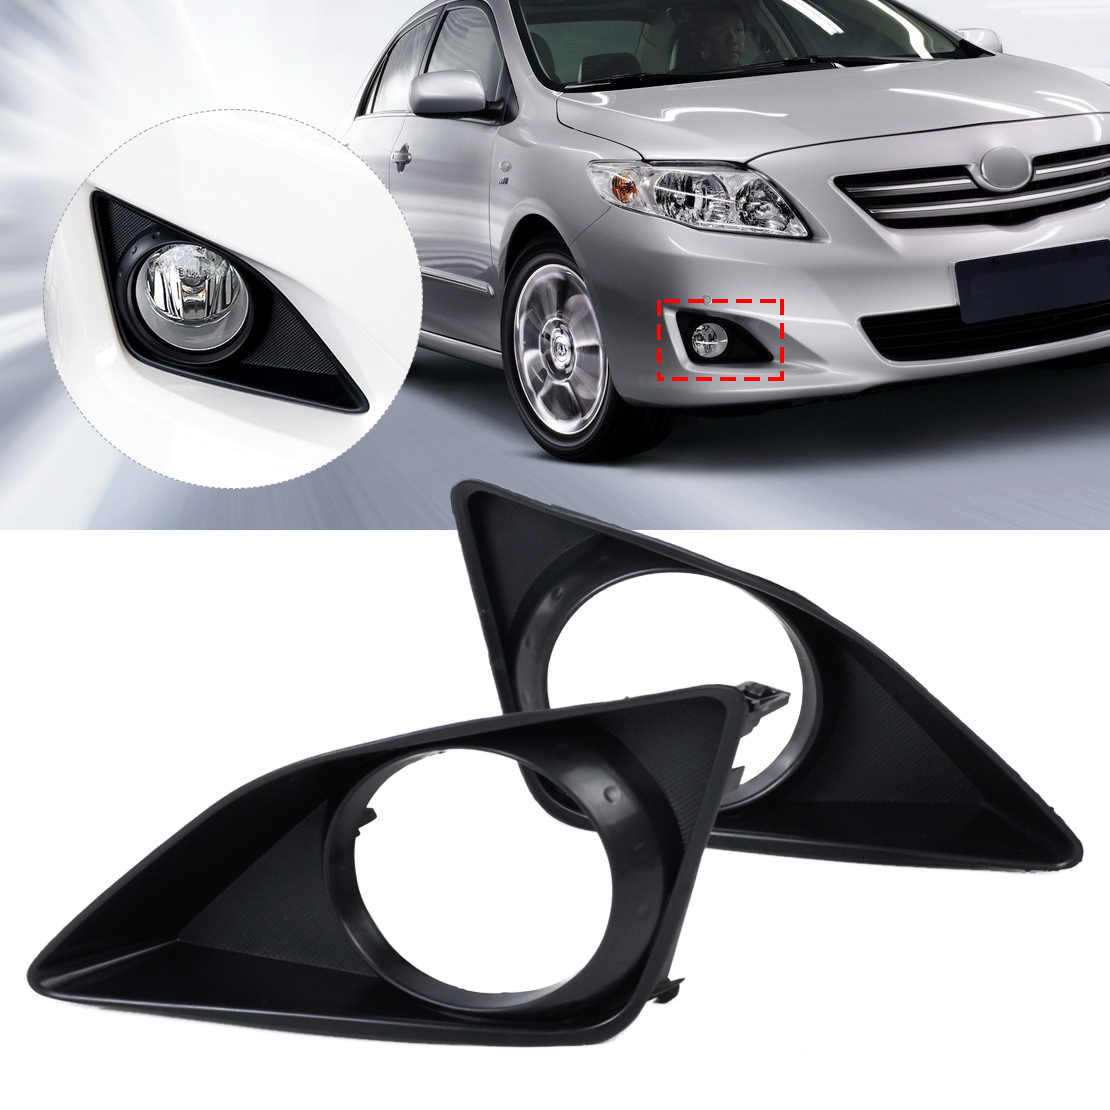 beler 2pcs New Black Front Right + Left Fog Light Lamp Grille Cover Foglight Bezel for Toyota Corolla 2007 2008 2009 2010